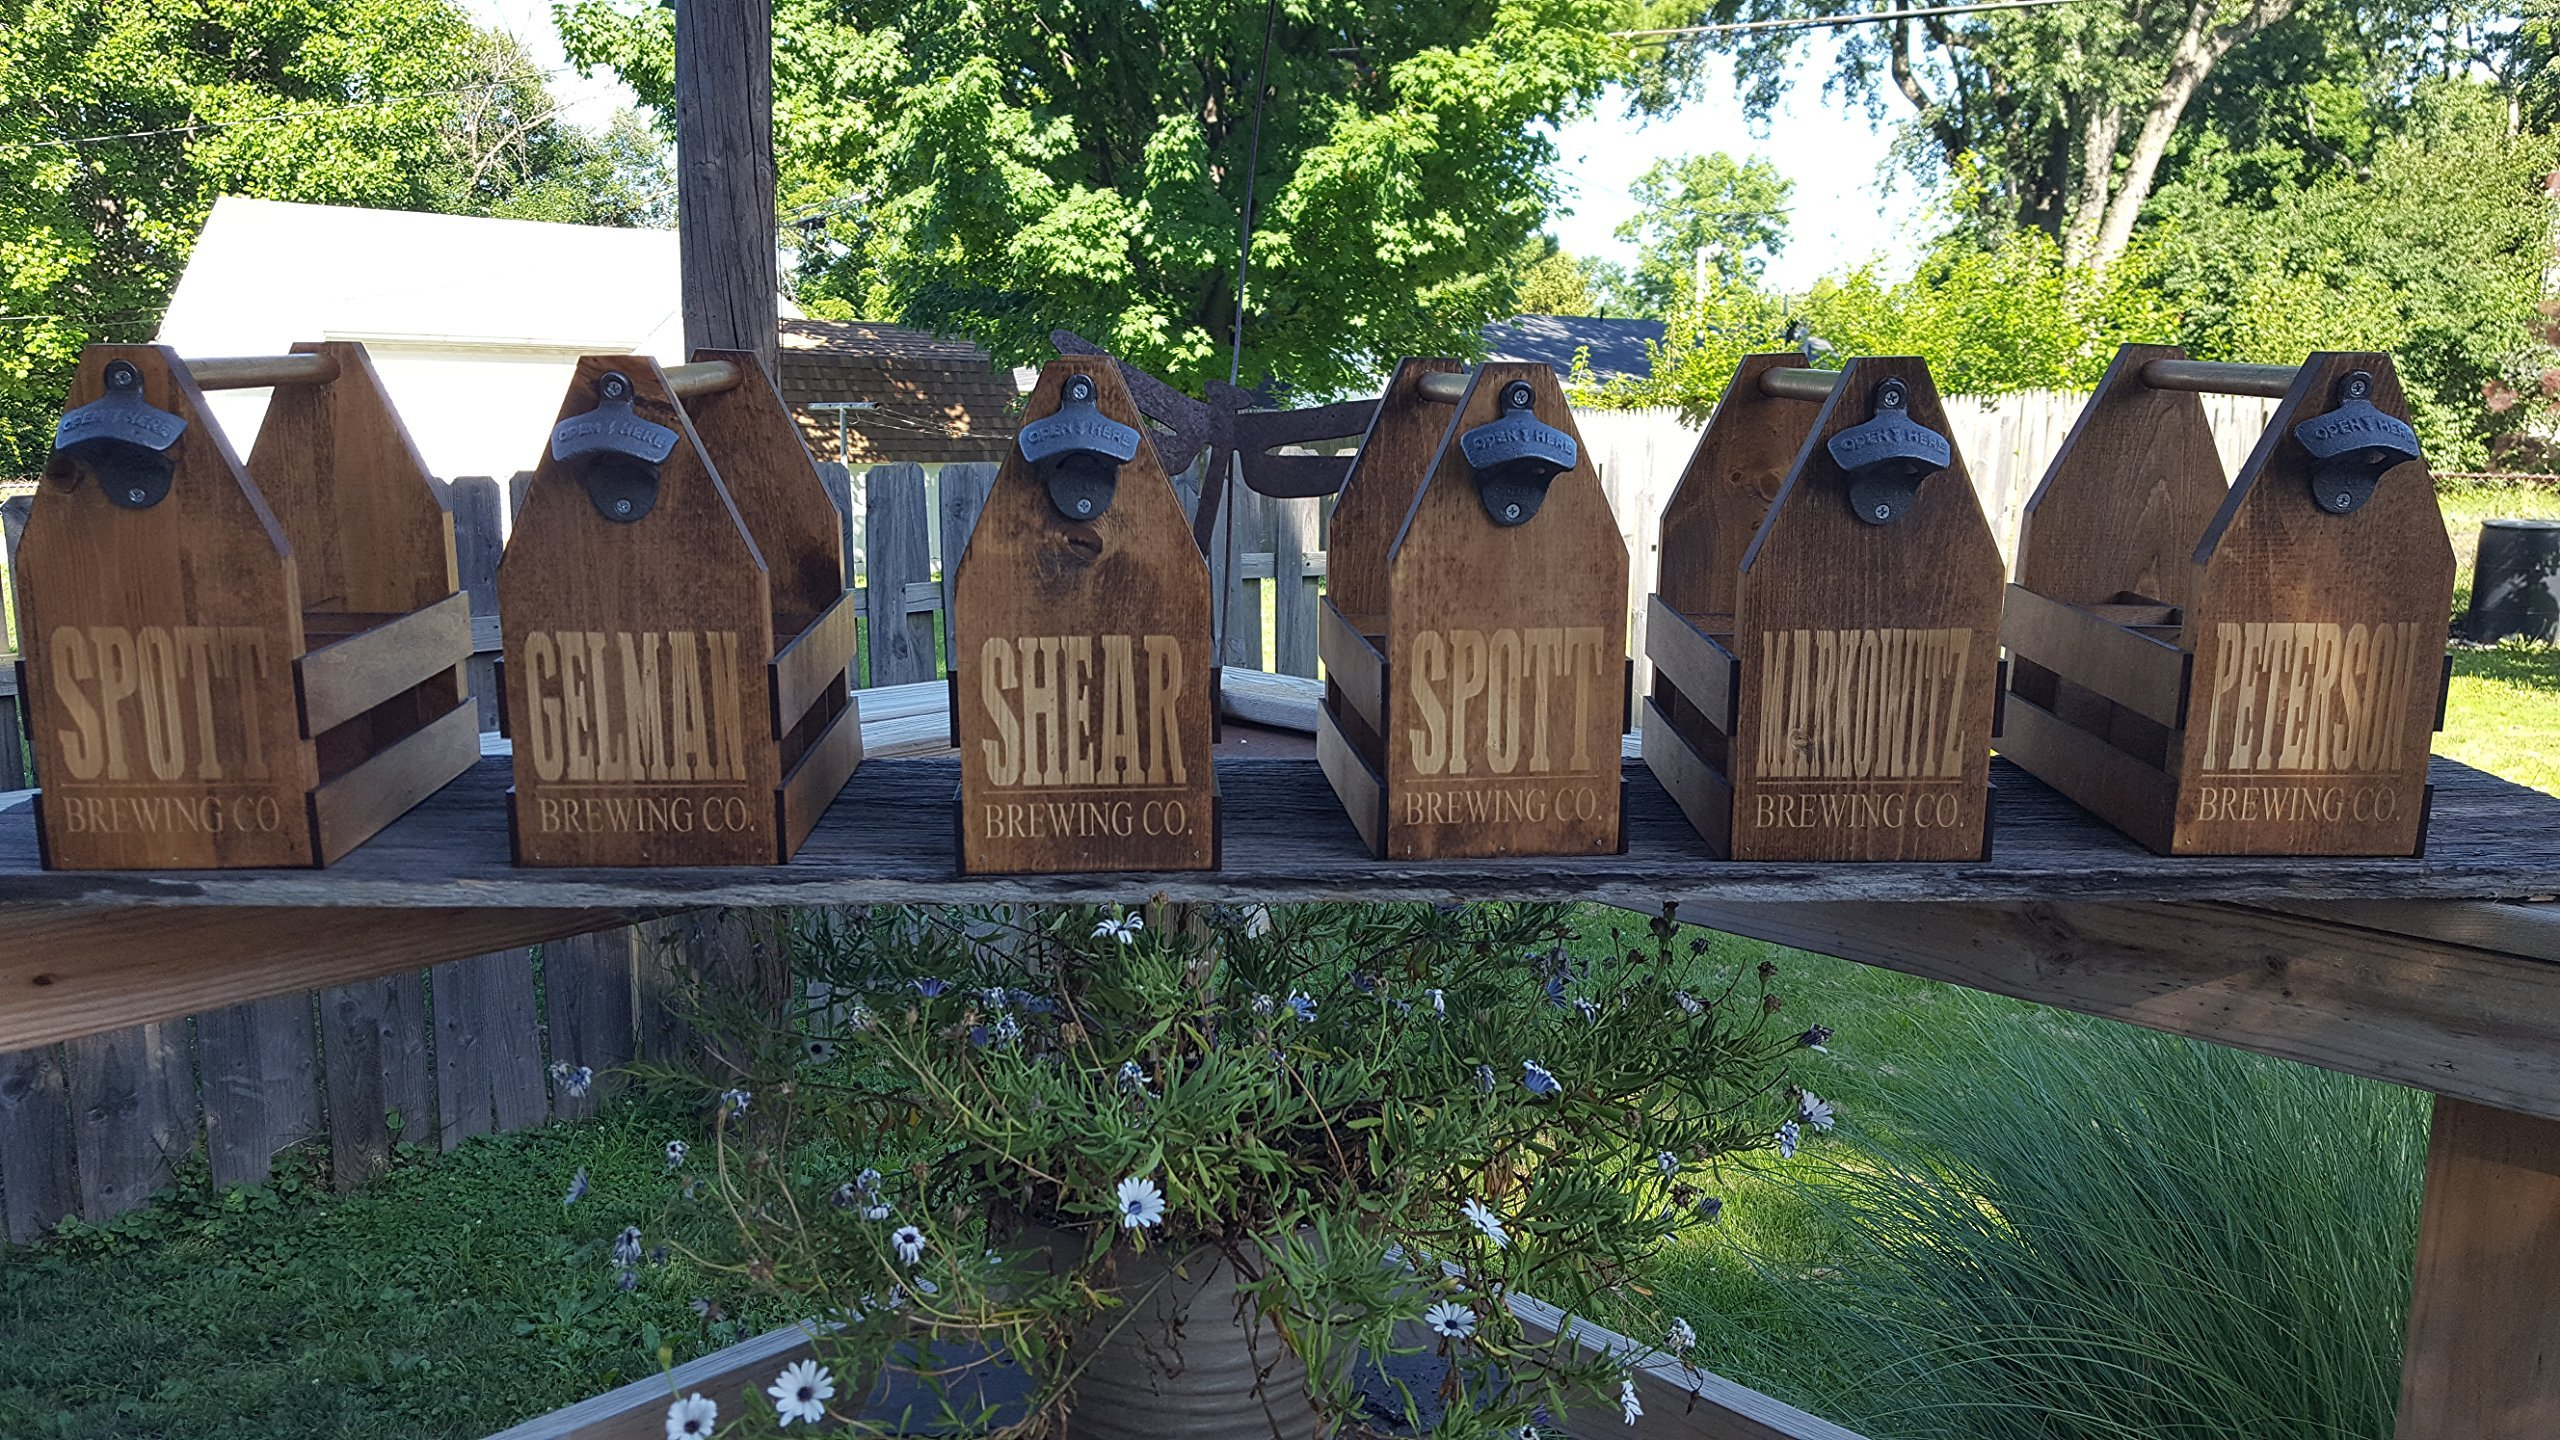 Group of Six Customized Brewing Company Beer Caddies